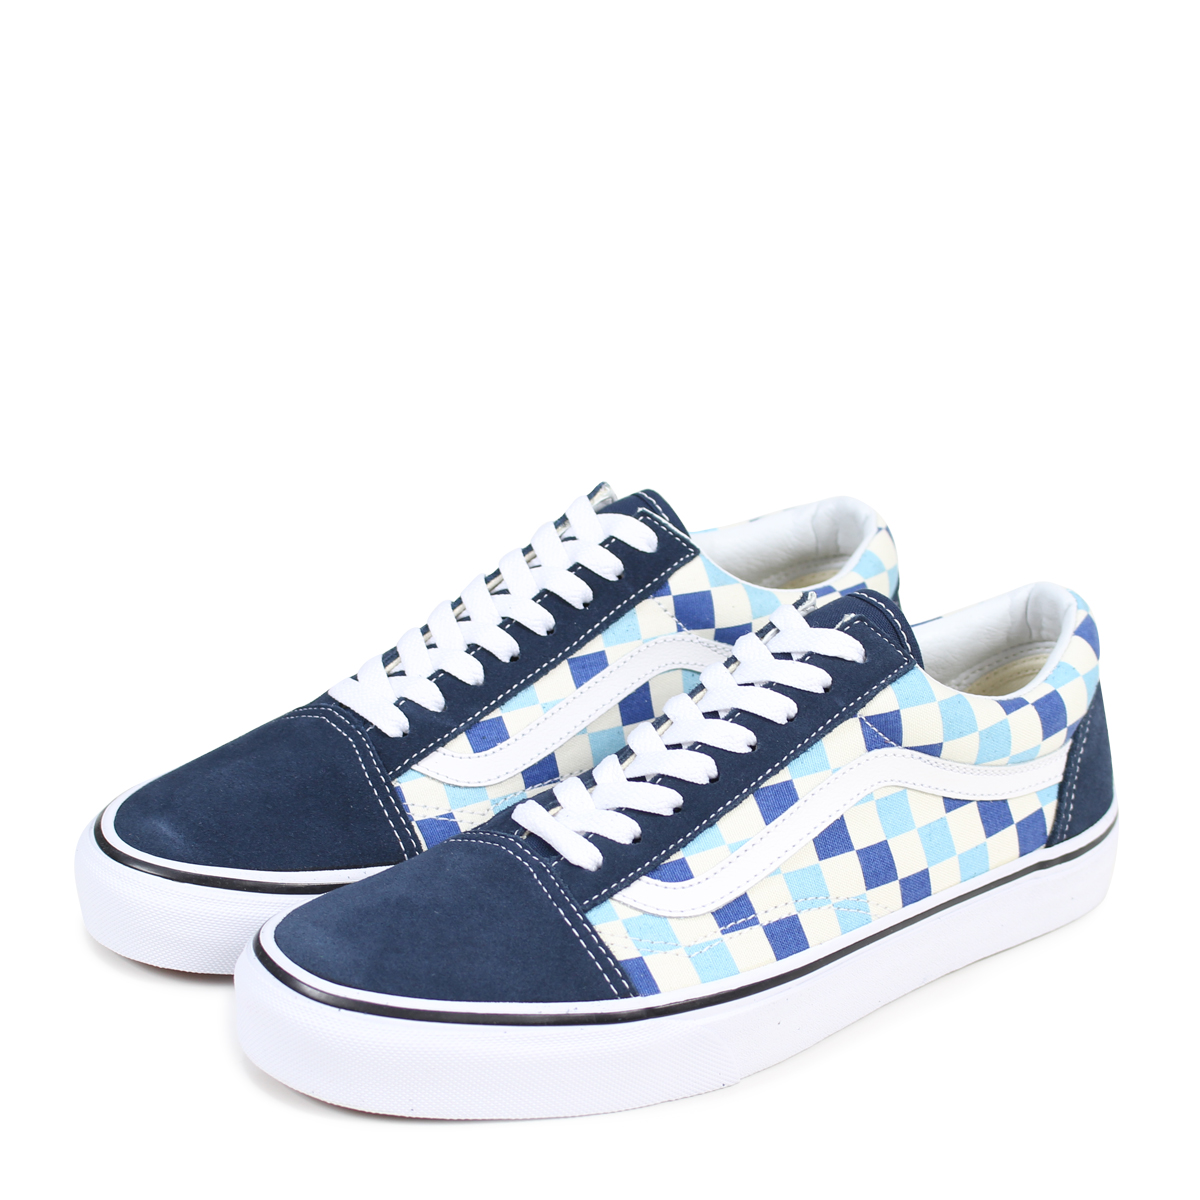 d5579270935 VANS OLD SKOOL old school sneakers men vans station wagons VN0A38G1QCM blue   3 15 Shinnyu load   183